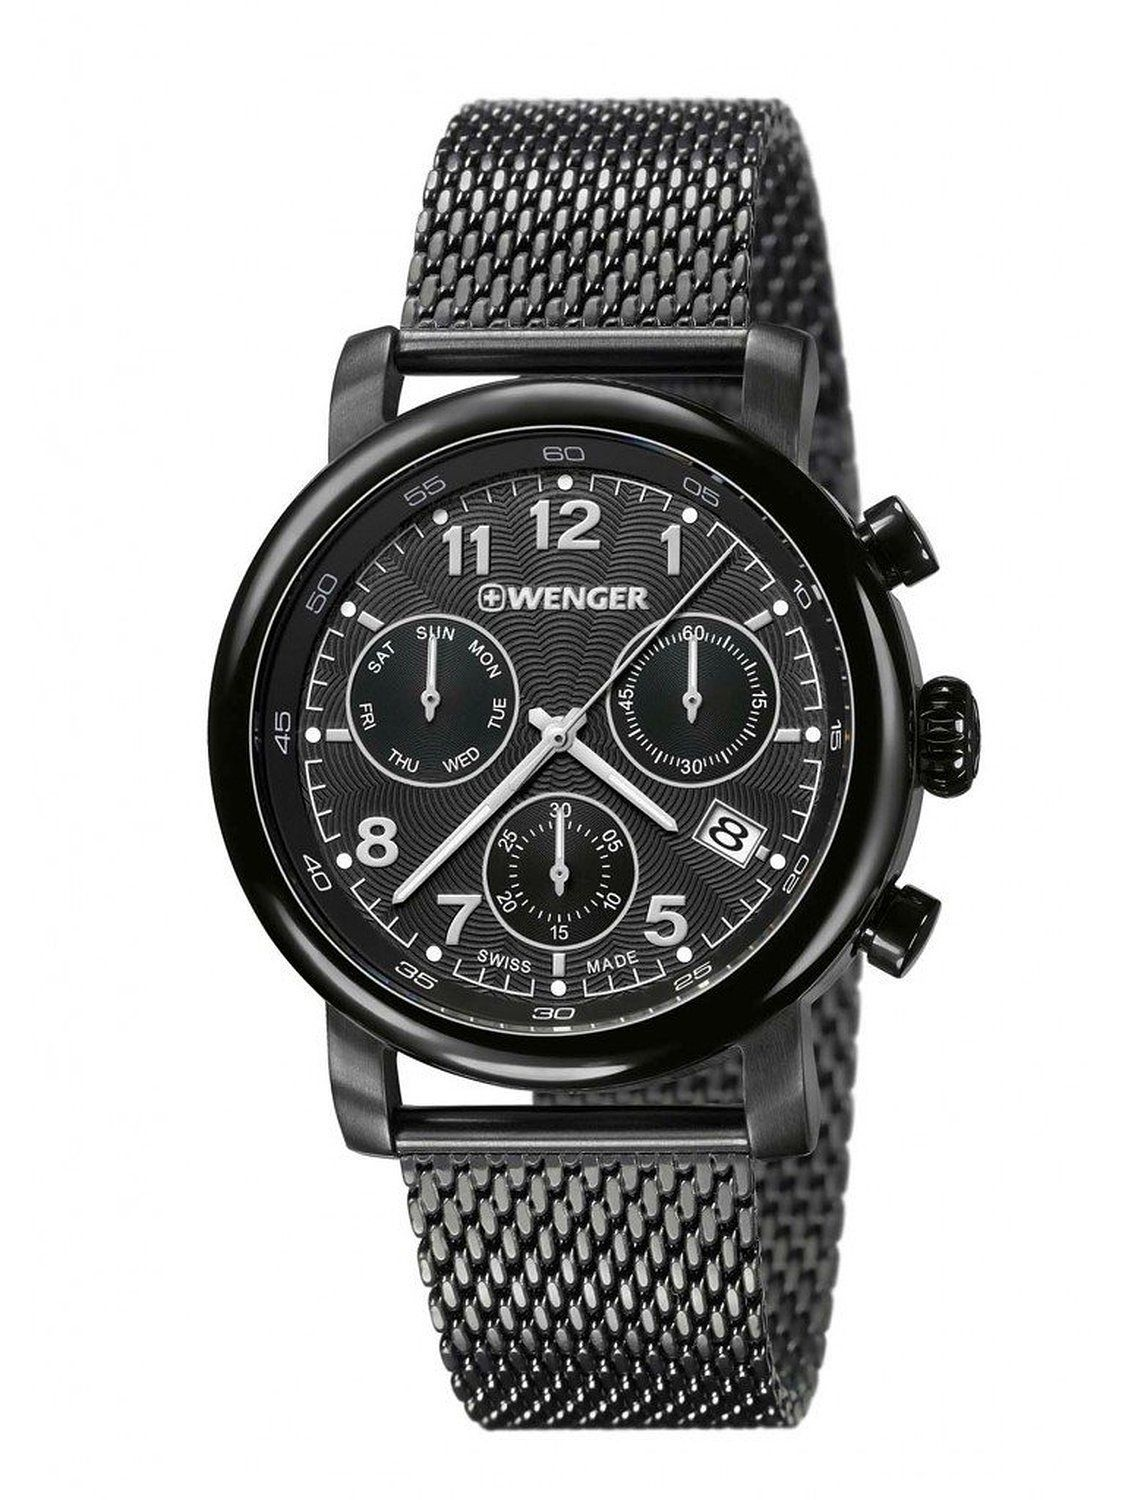 wenger urban classic chrono gents watch. Black Bedroom Furniture Sets. Home Design Ideas